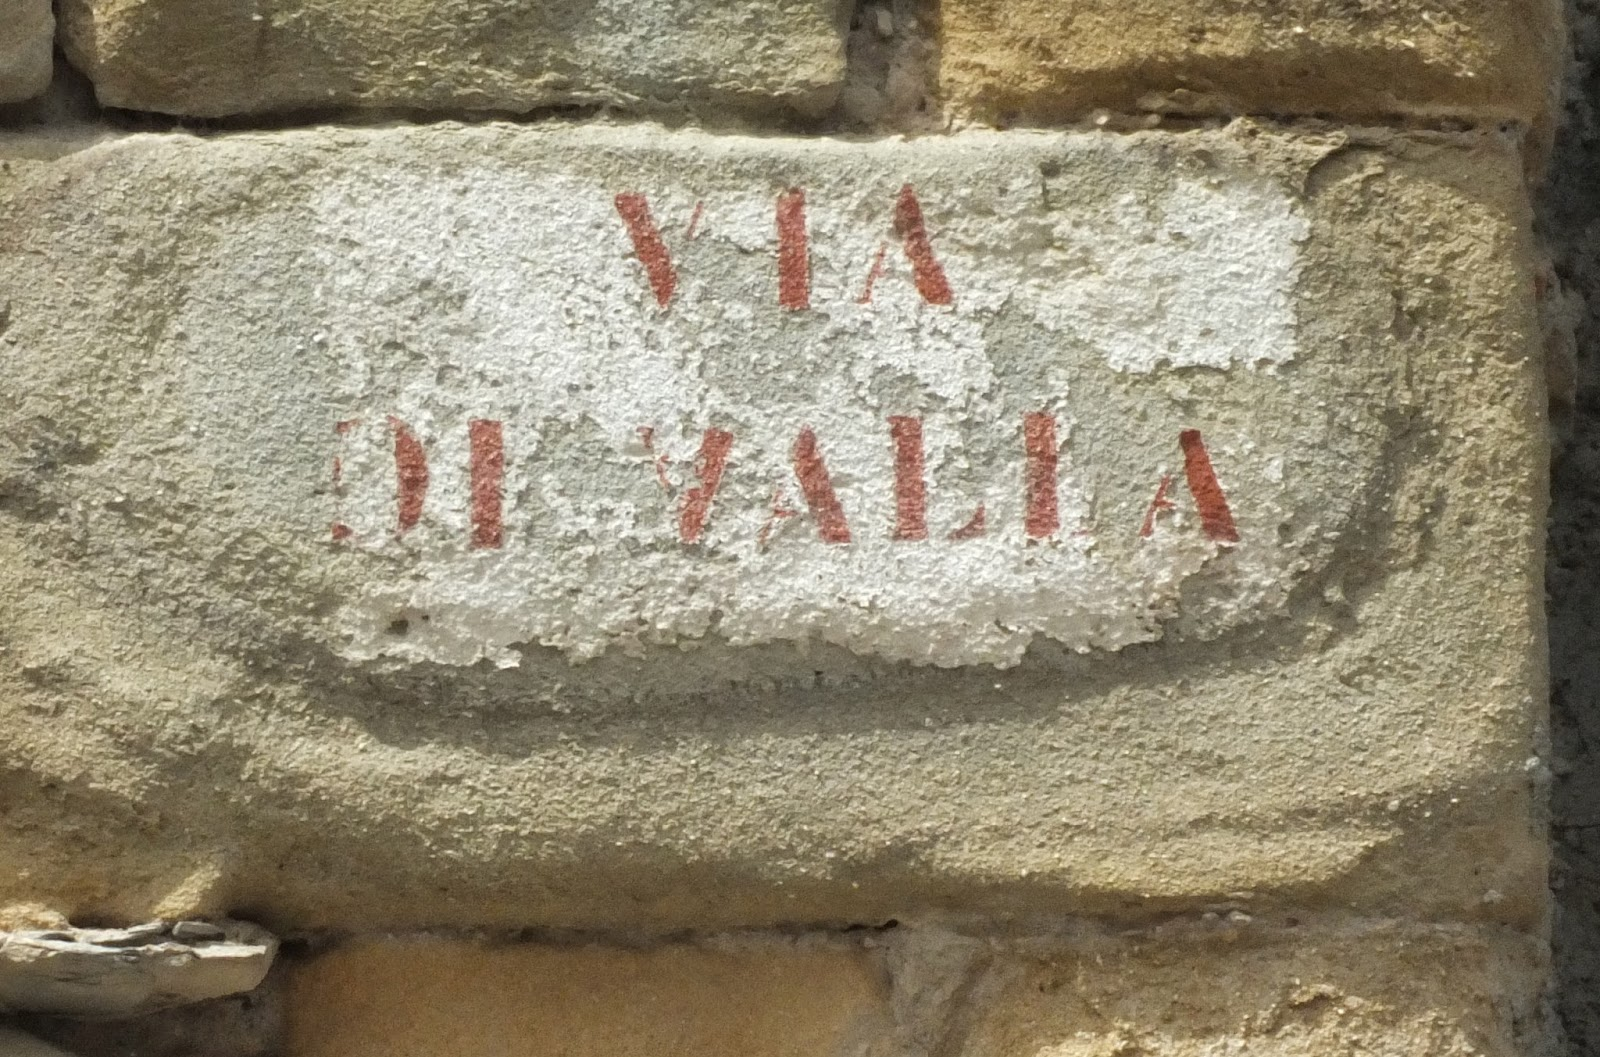 Ancient Via di Valla street sign